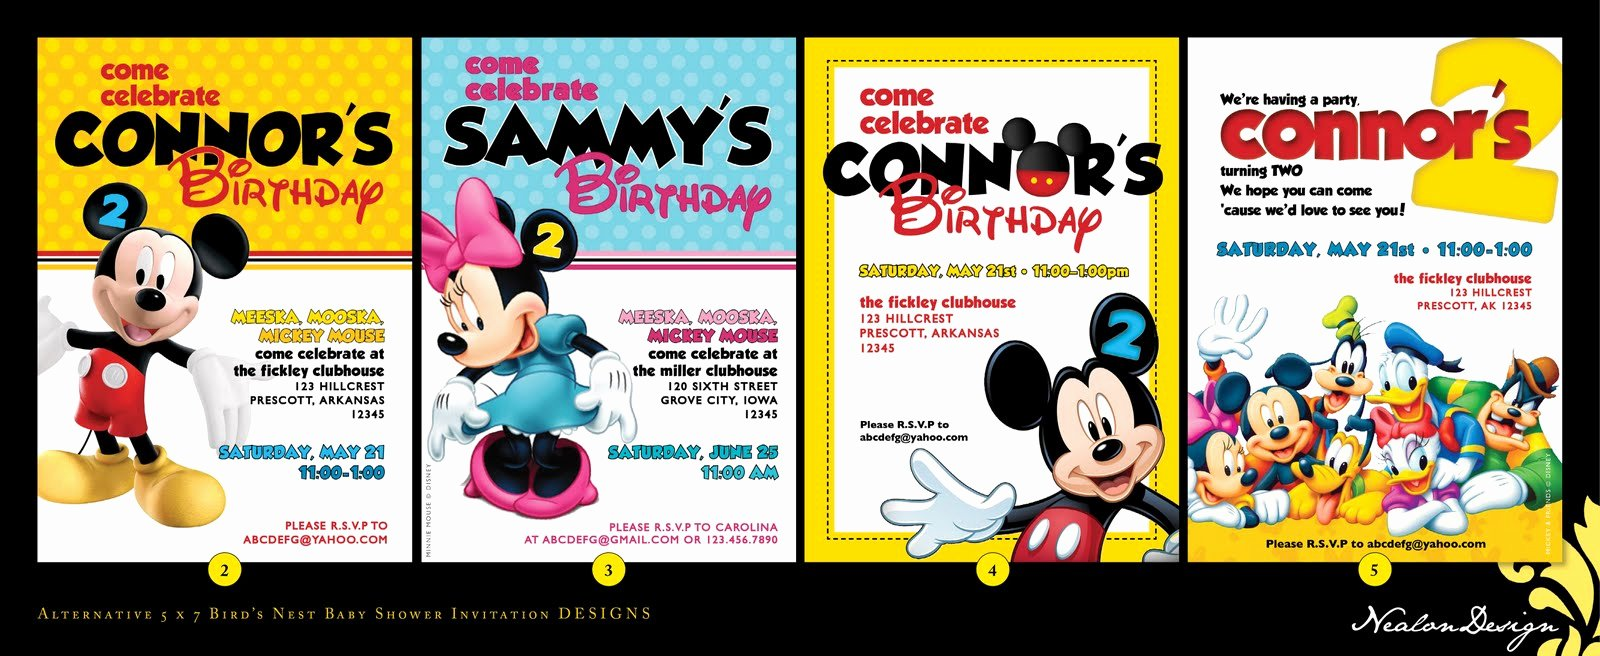 Mickey Mouse Clubhouse Invitation Template Inspirational Nealon Design Mickey Mouse Clubhouse Birthday Invitations